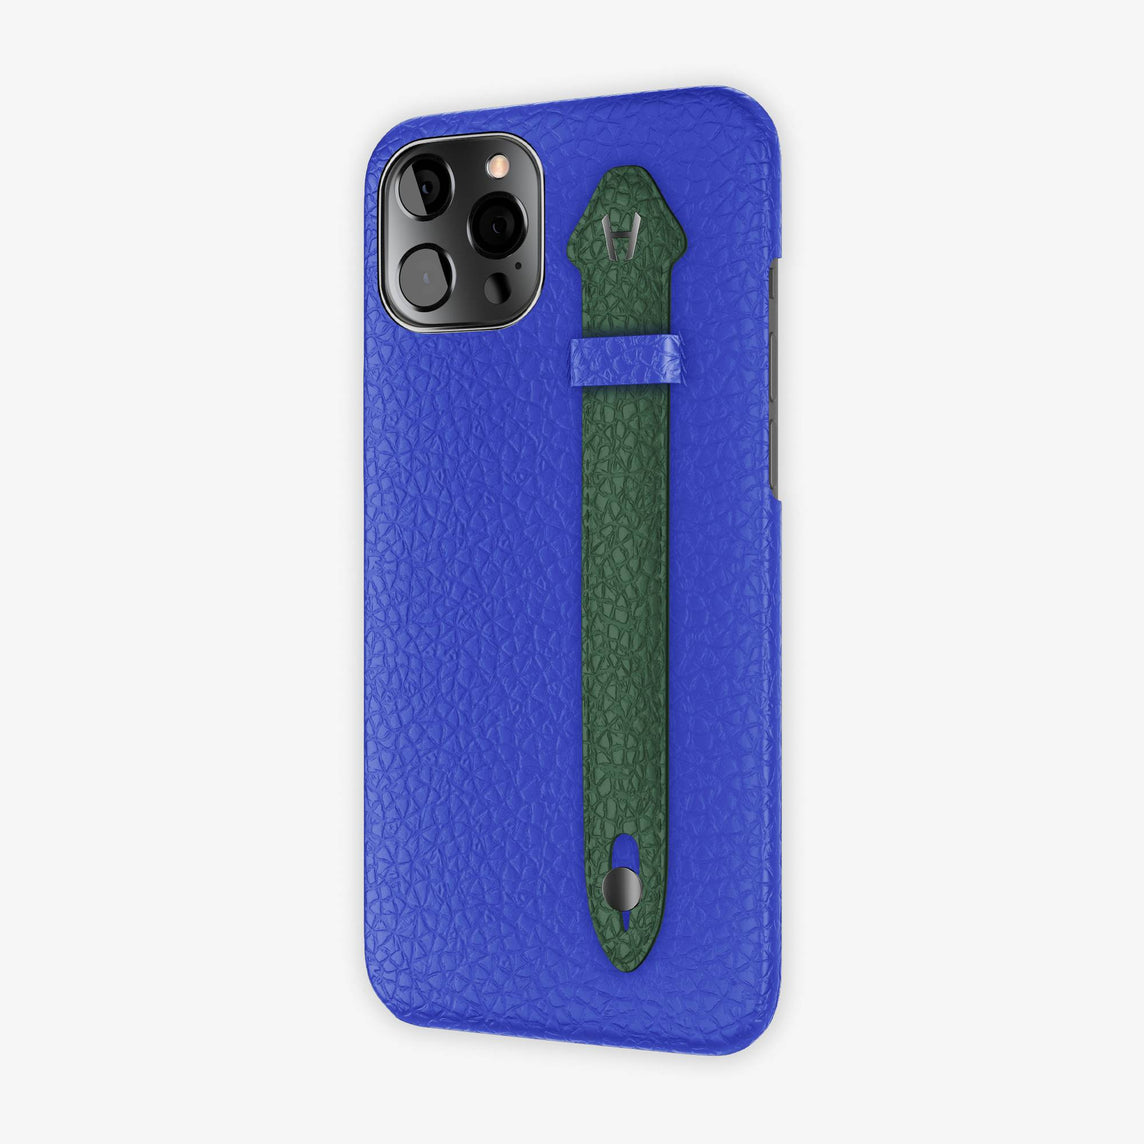 Calfskin Side Finger Case iPhone 12 Pro Max | Peony Blue/Green - Black